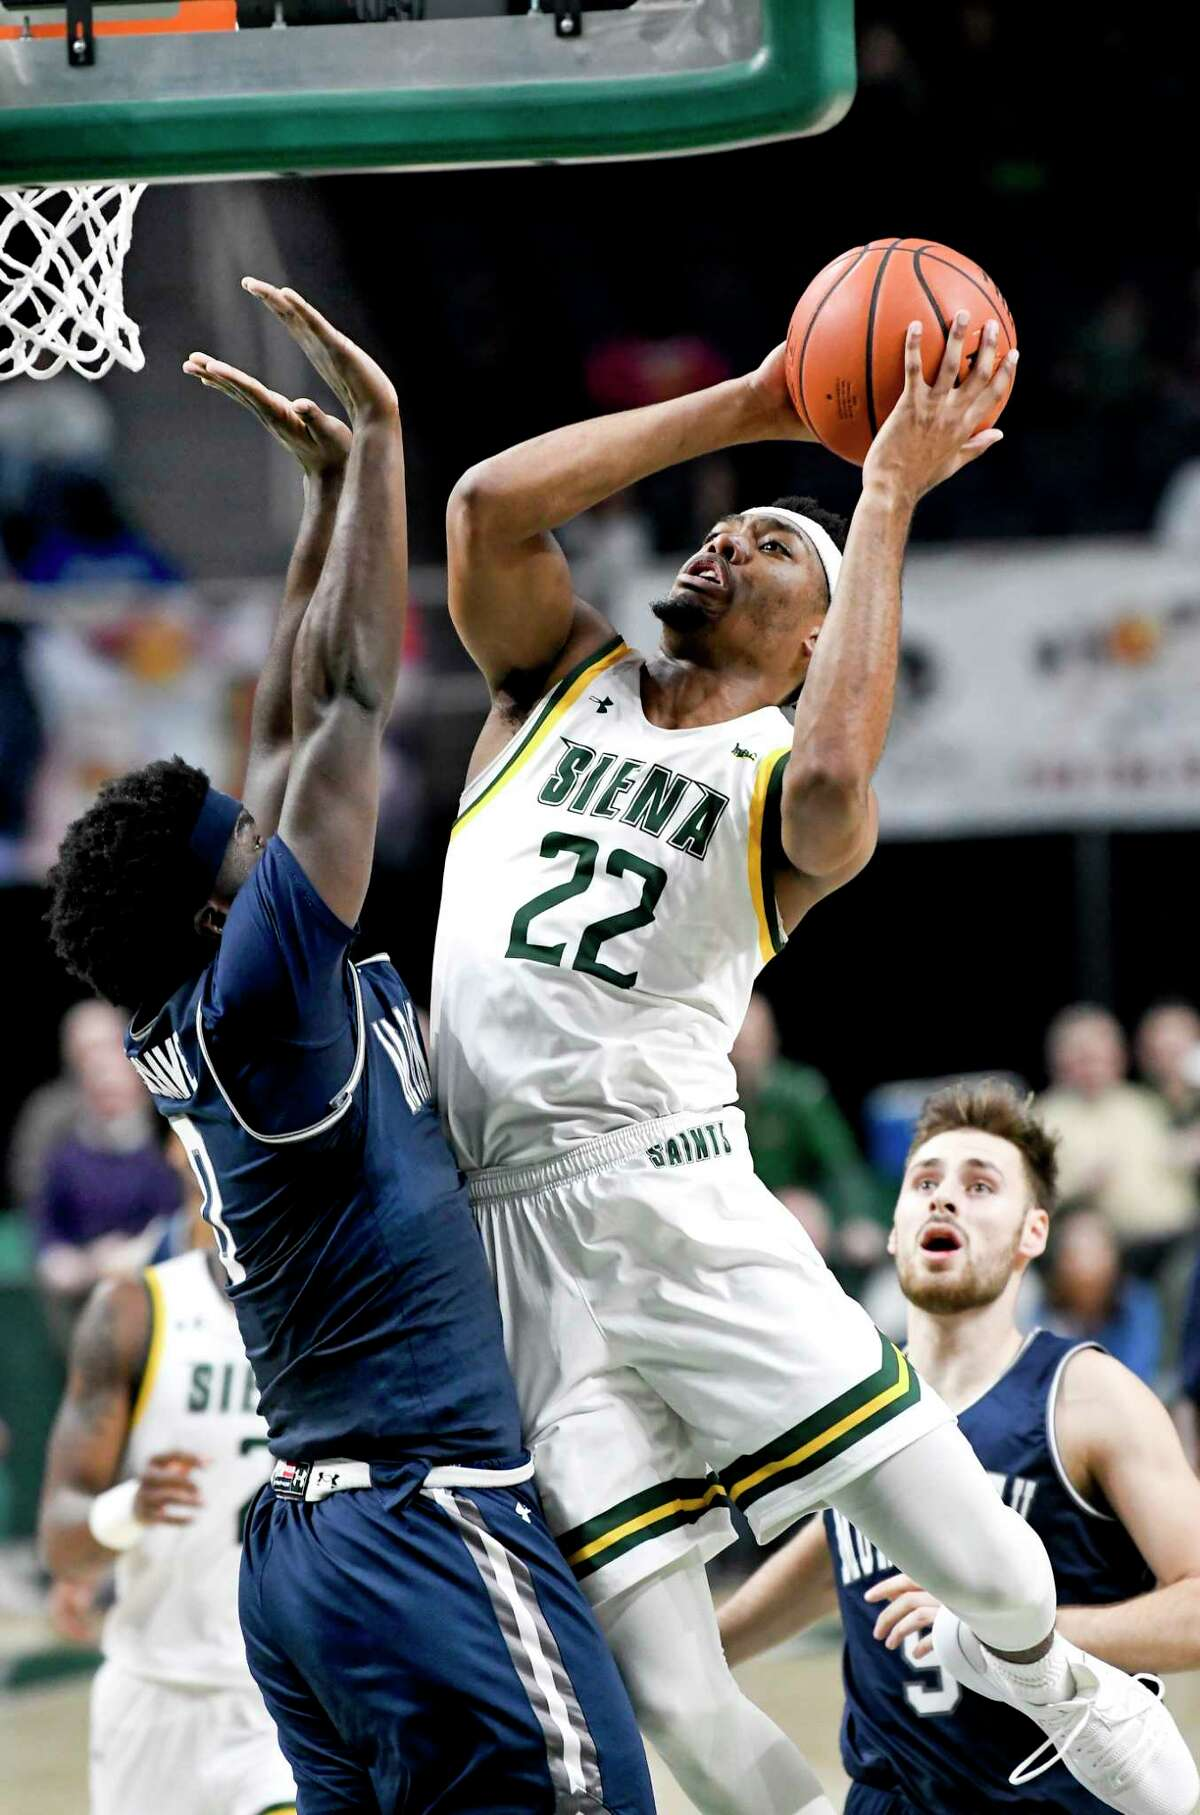 Siena guard Jalen Pickett (22) scores against Monmouth guard Ray Salnave (0) during the second half of an NCAA basketball game Friday, Jan. 3, 2020, in Albany, N.Y. Siena won 75-72. (Hans Pennink / Special to the Times Union) ORG XMIT: 010420_siena_HP107